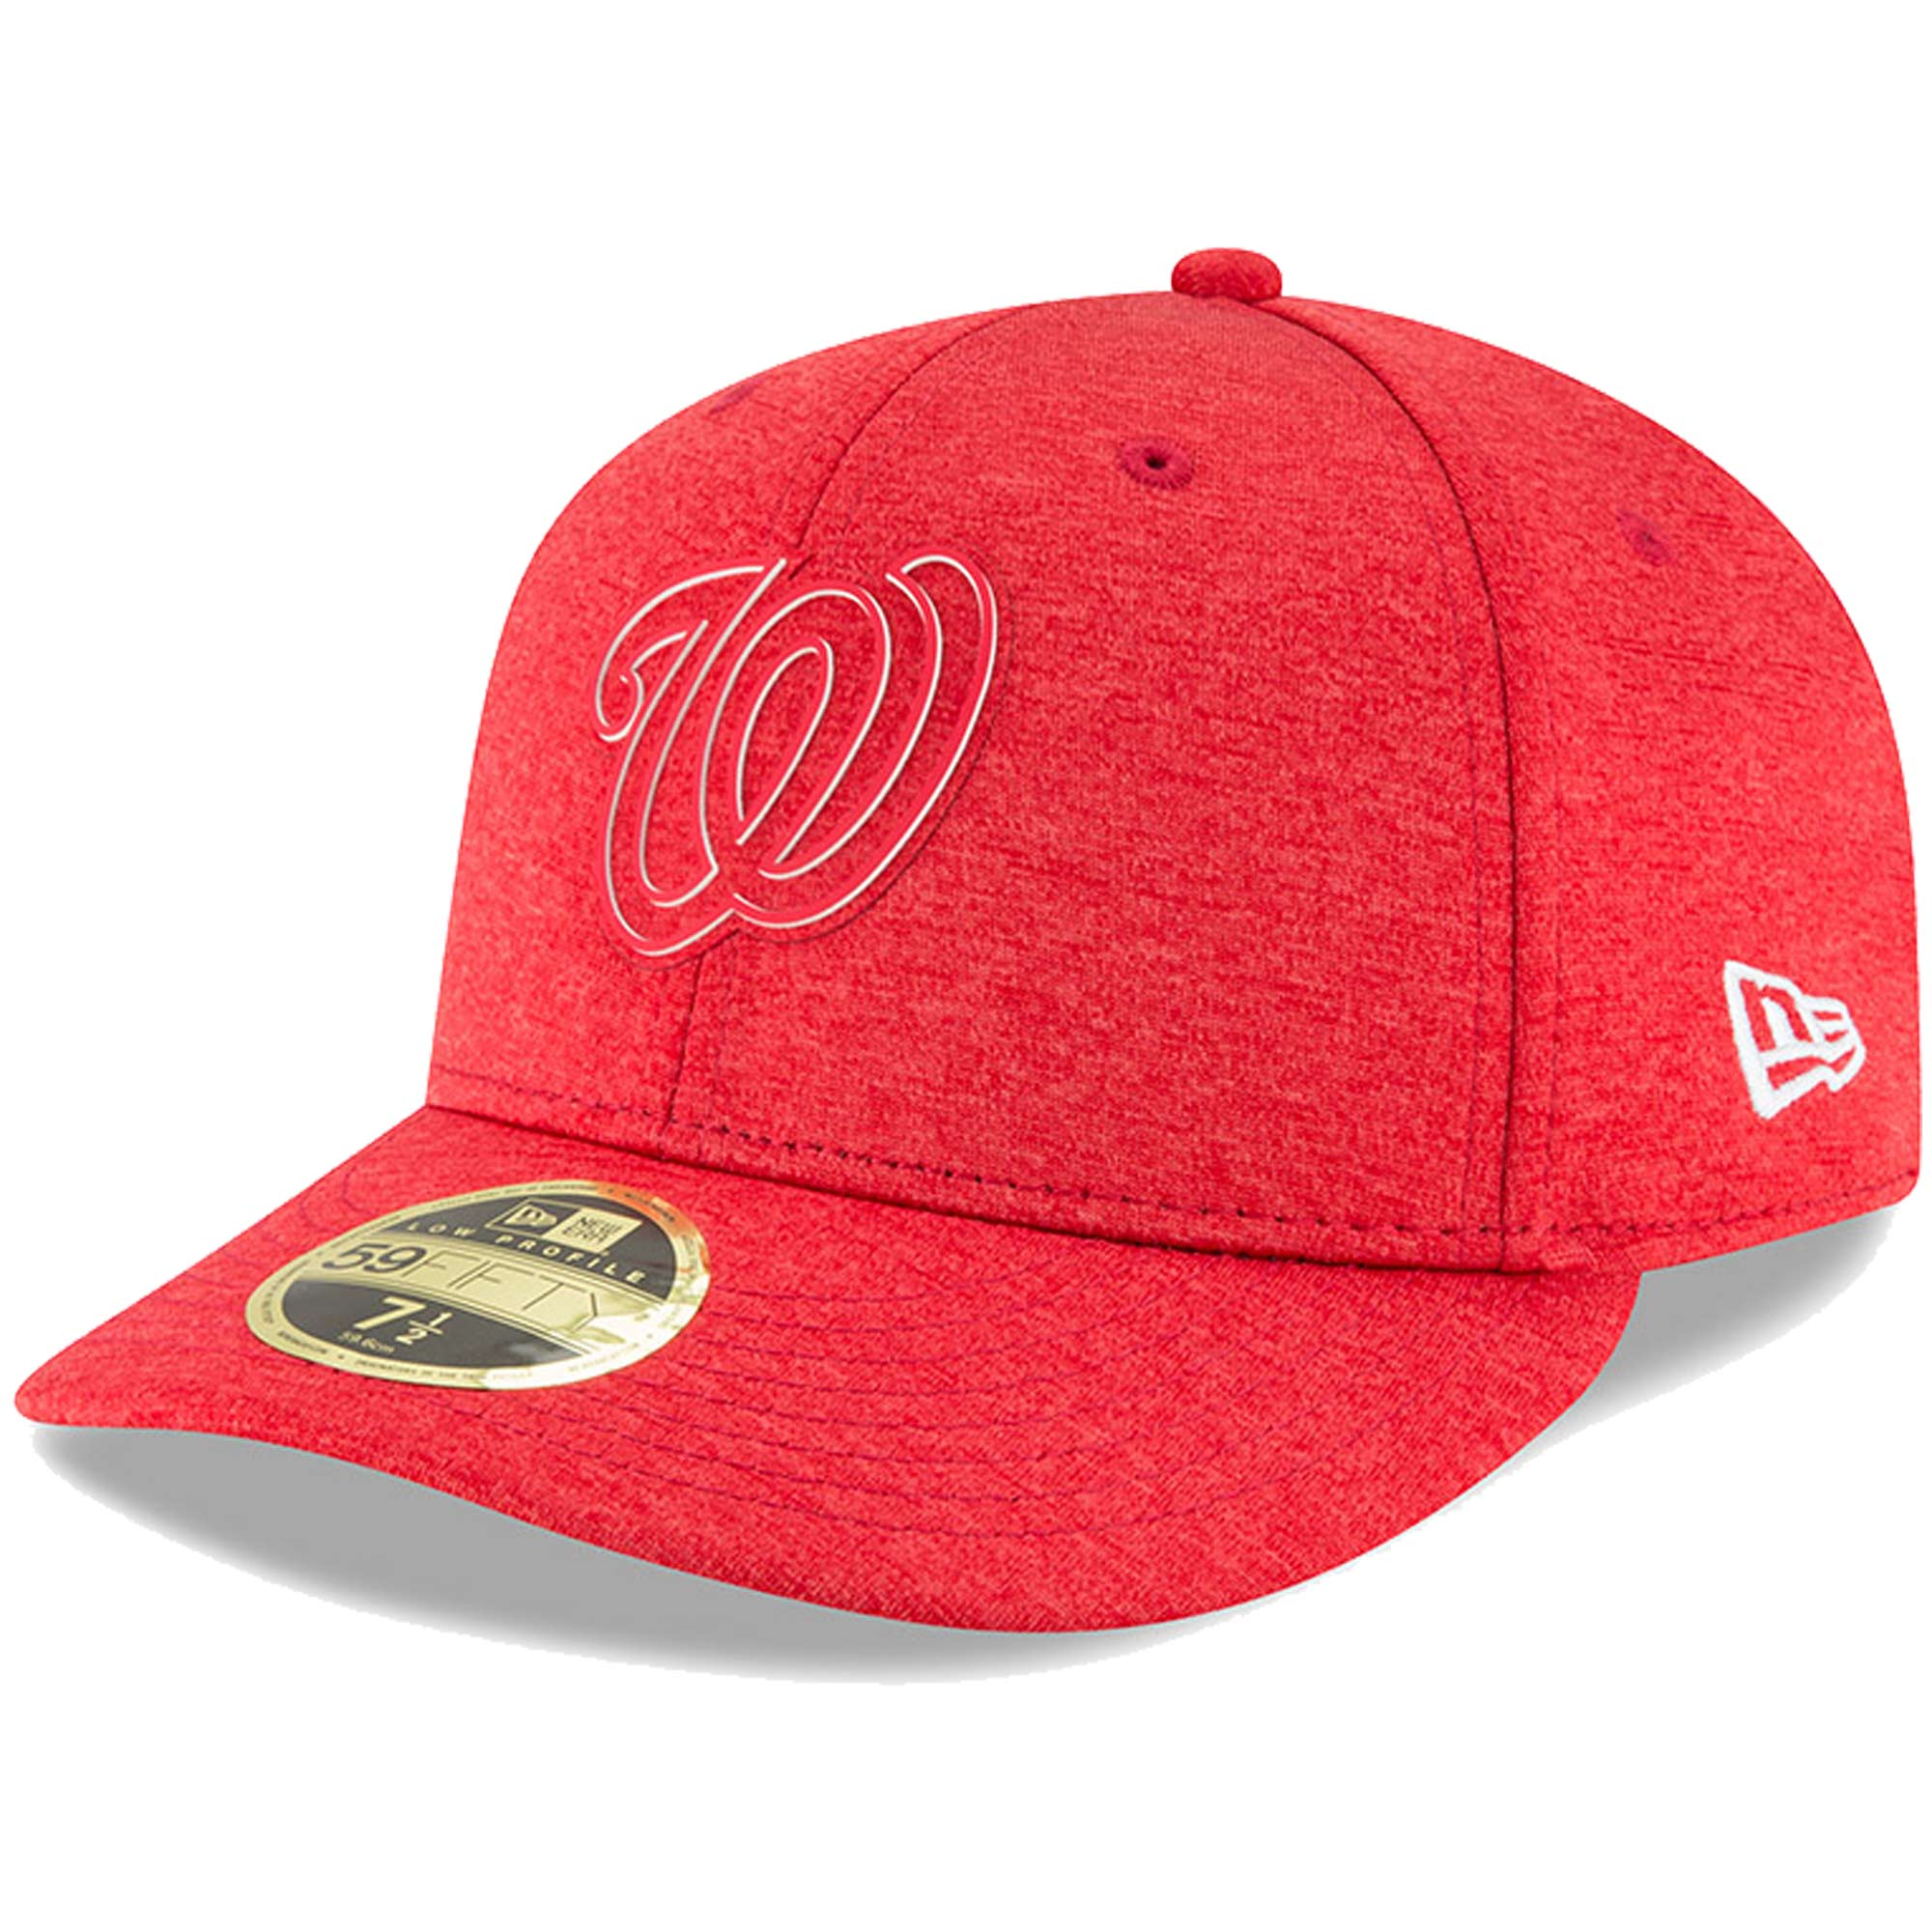 Washington Nationals New Era 2018 Clubhouse Collection Low Profile 59FIFTY Fitted Hat - Red